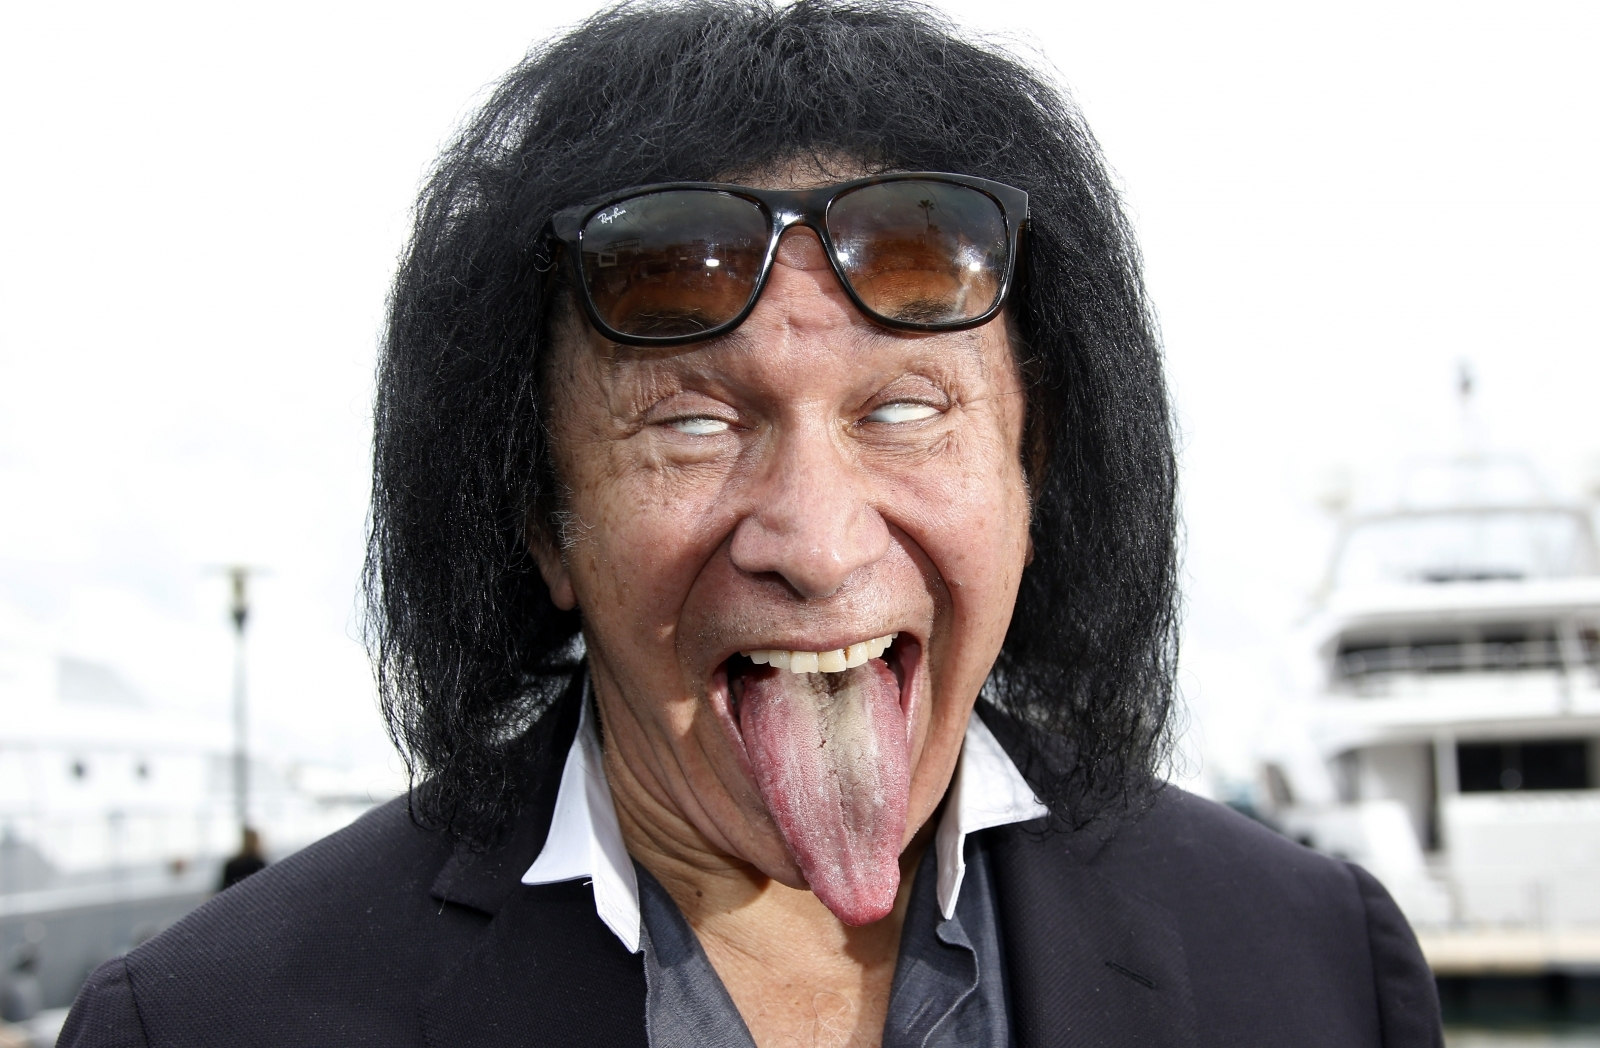 Gene Simmons banned by Fox News after reportedly exposing torso during meeting